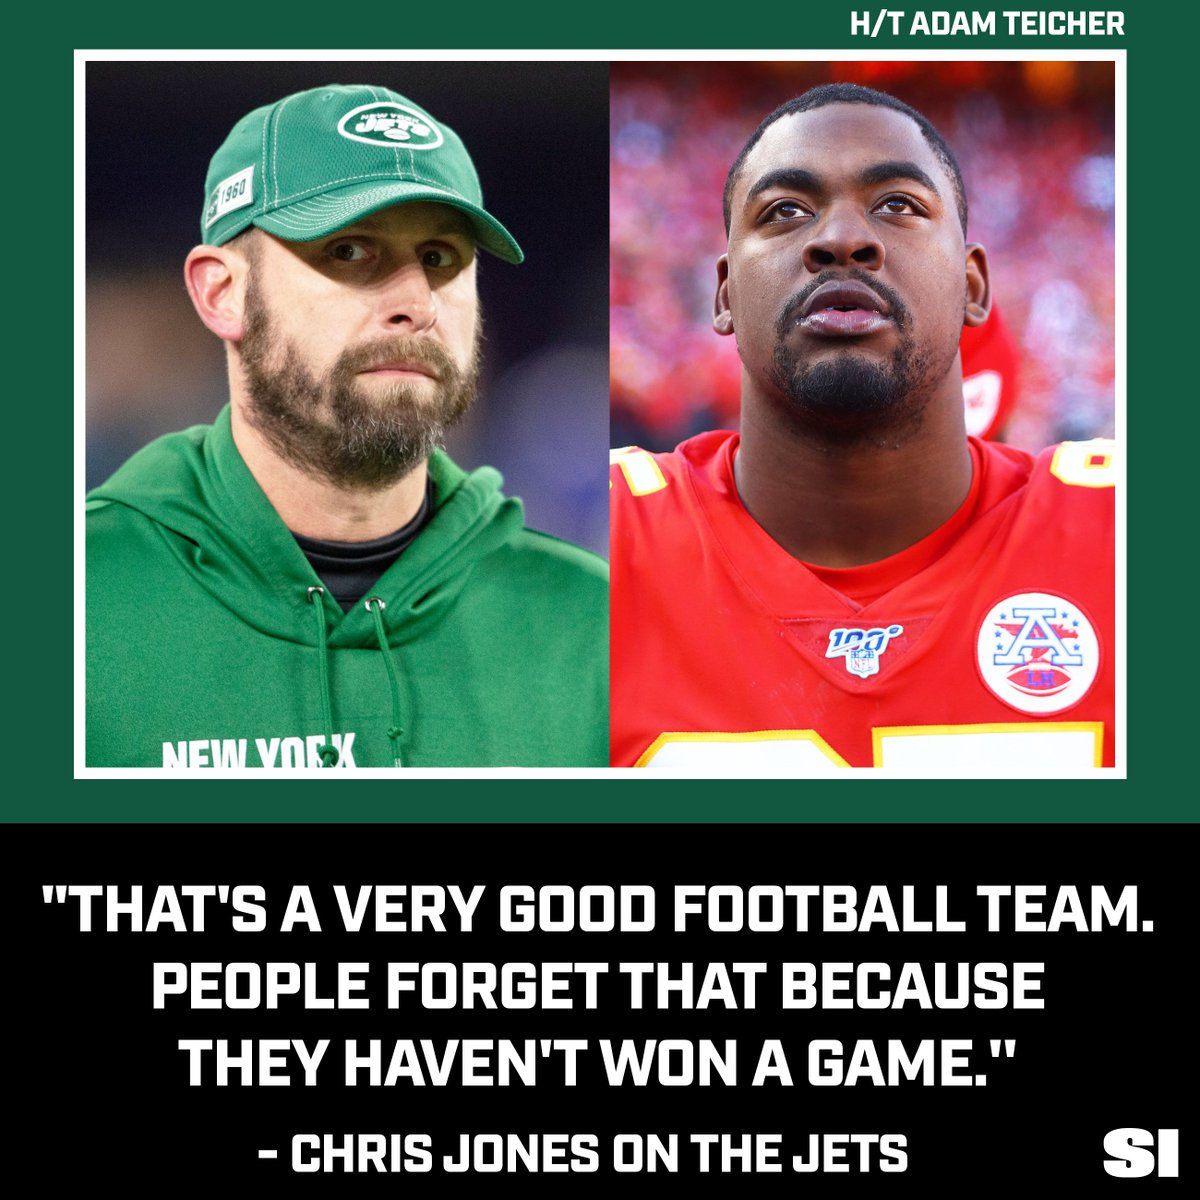 The Chiefs are 19.5-point favorites over the Jets on Sunday... https://t.co/ifFZGlOvRq